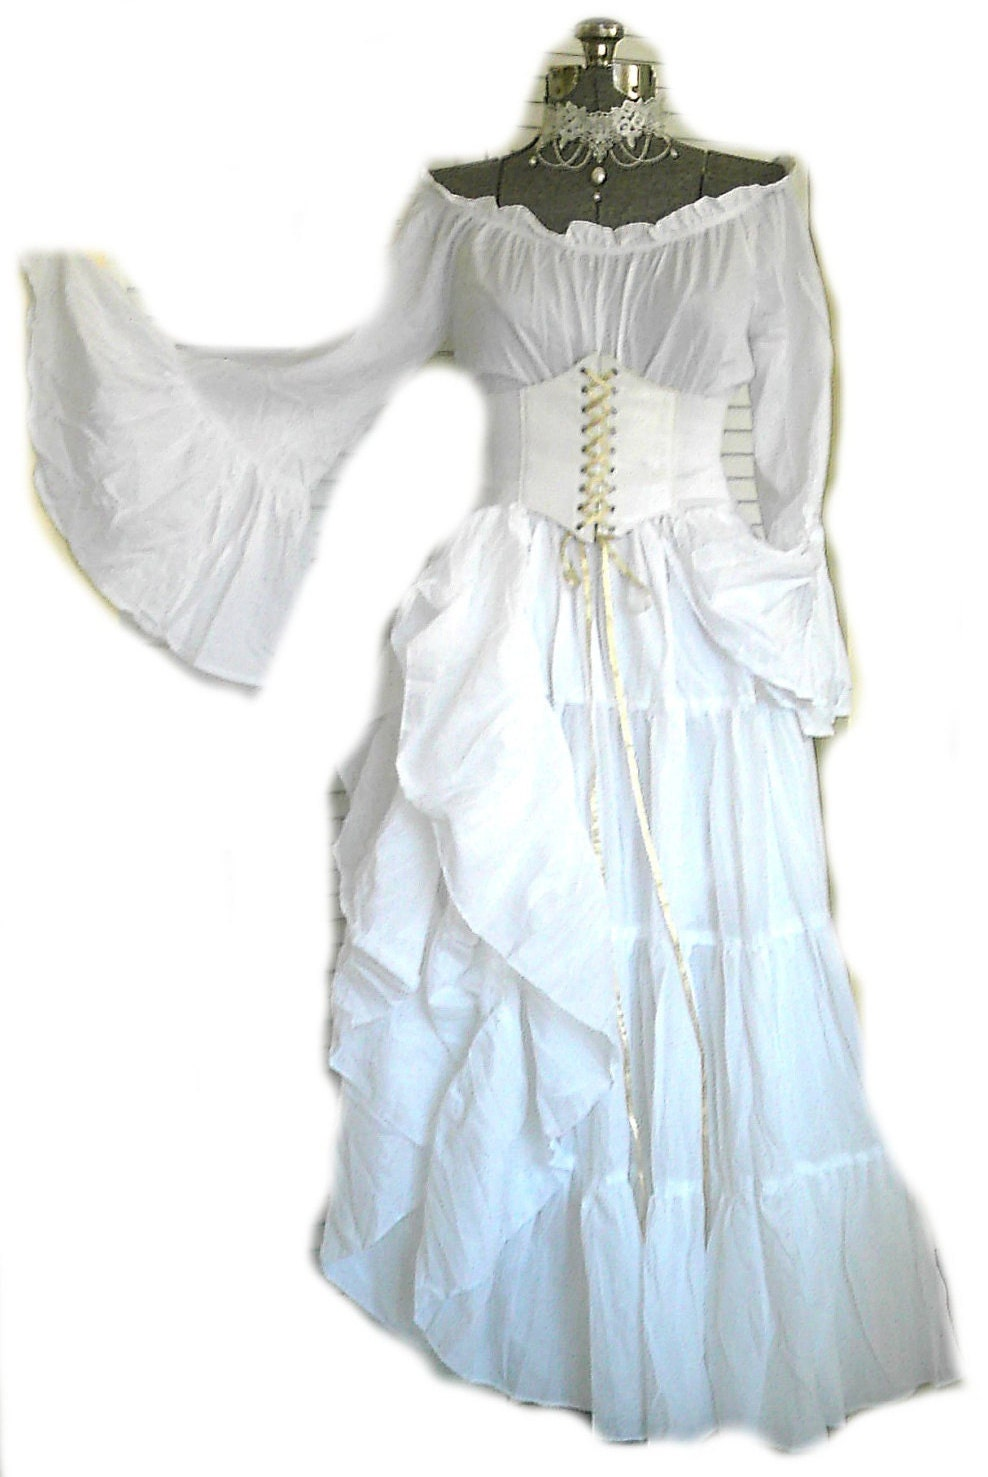 White renaissance dress wedding gown corset chemise pirate for White corset wedding dress